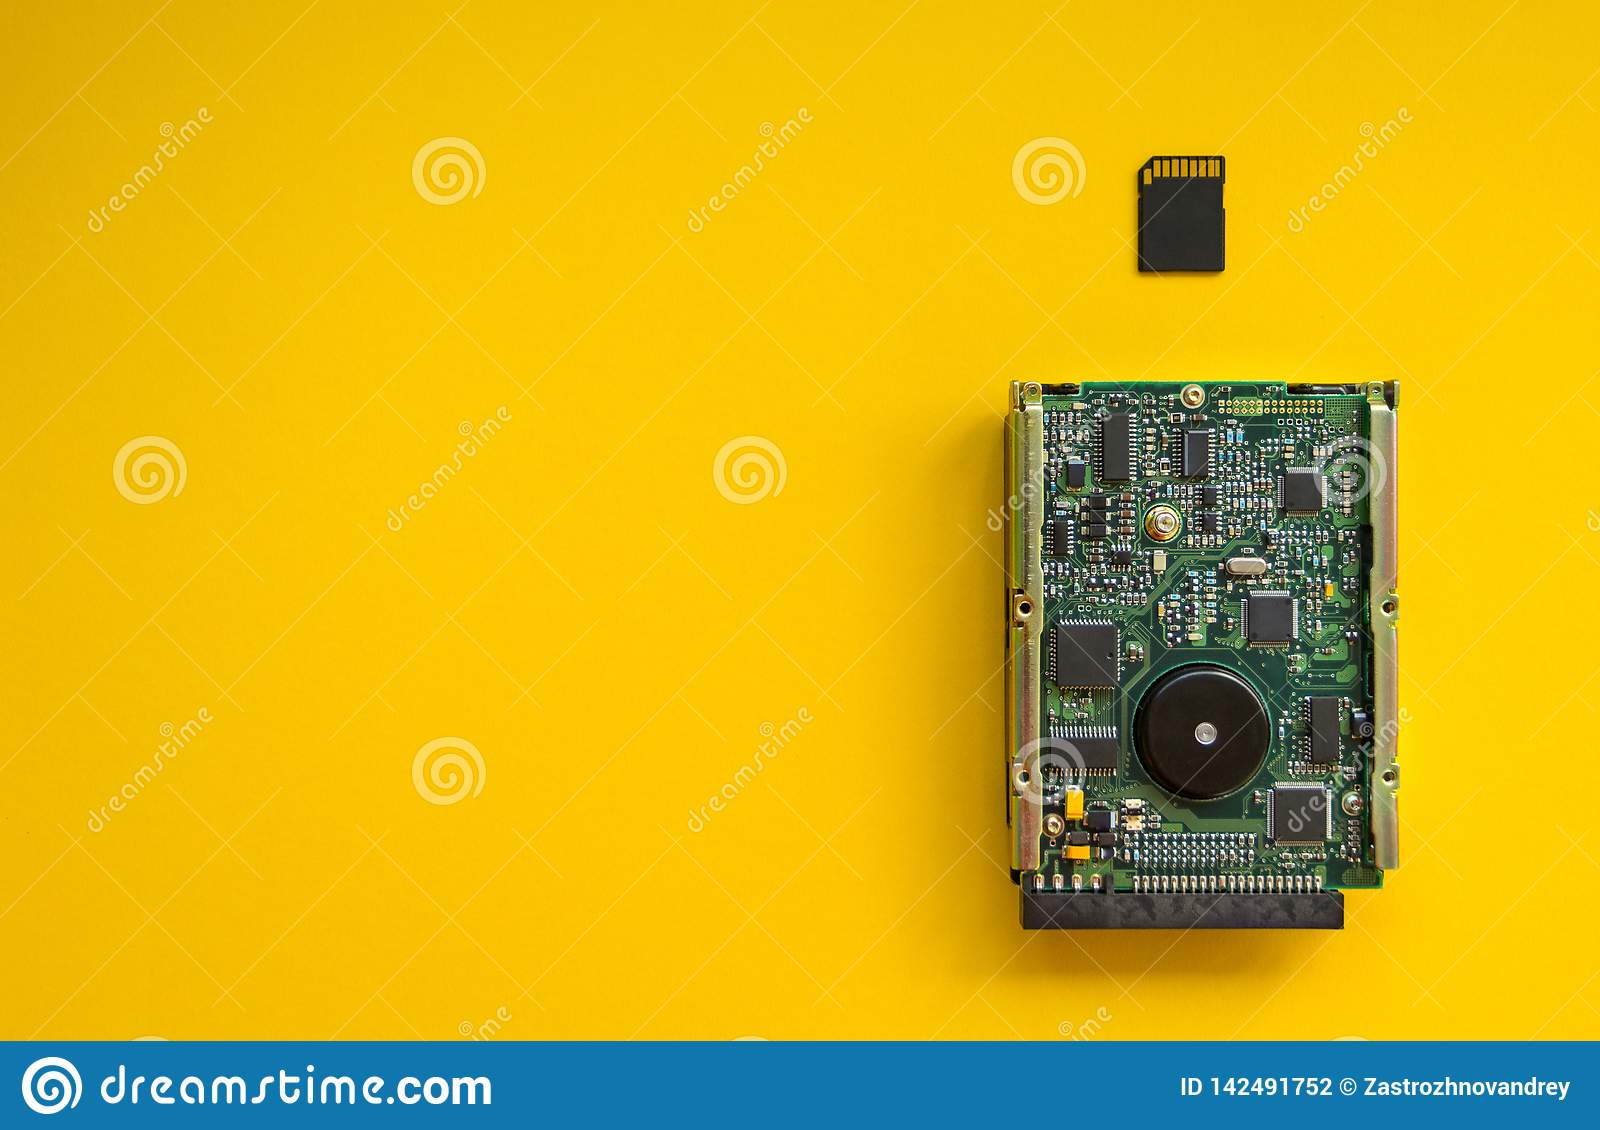 The revolution of technology memory devices on a yellow background, concept. The hard drive and memory card